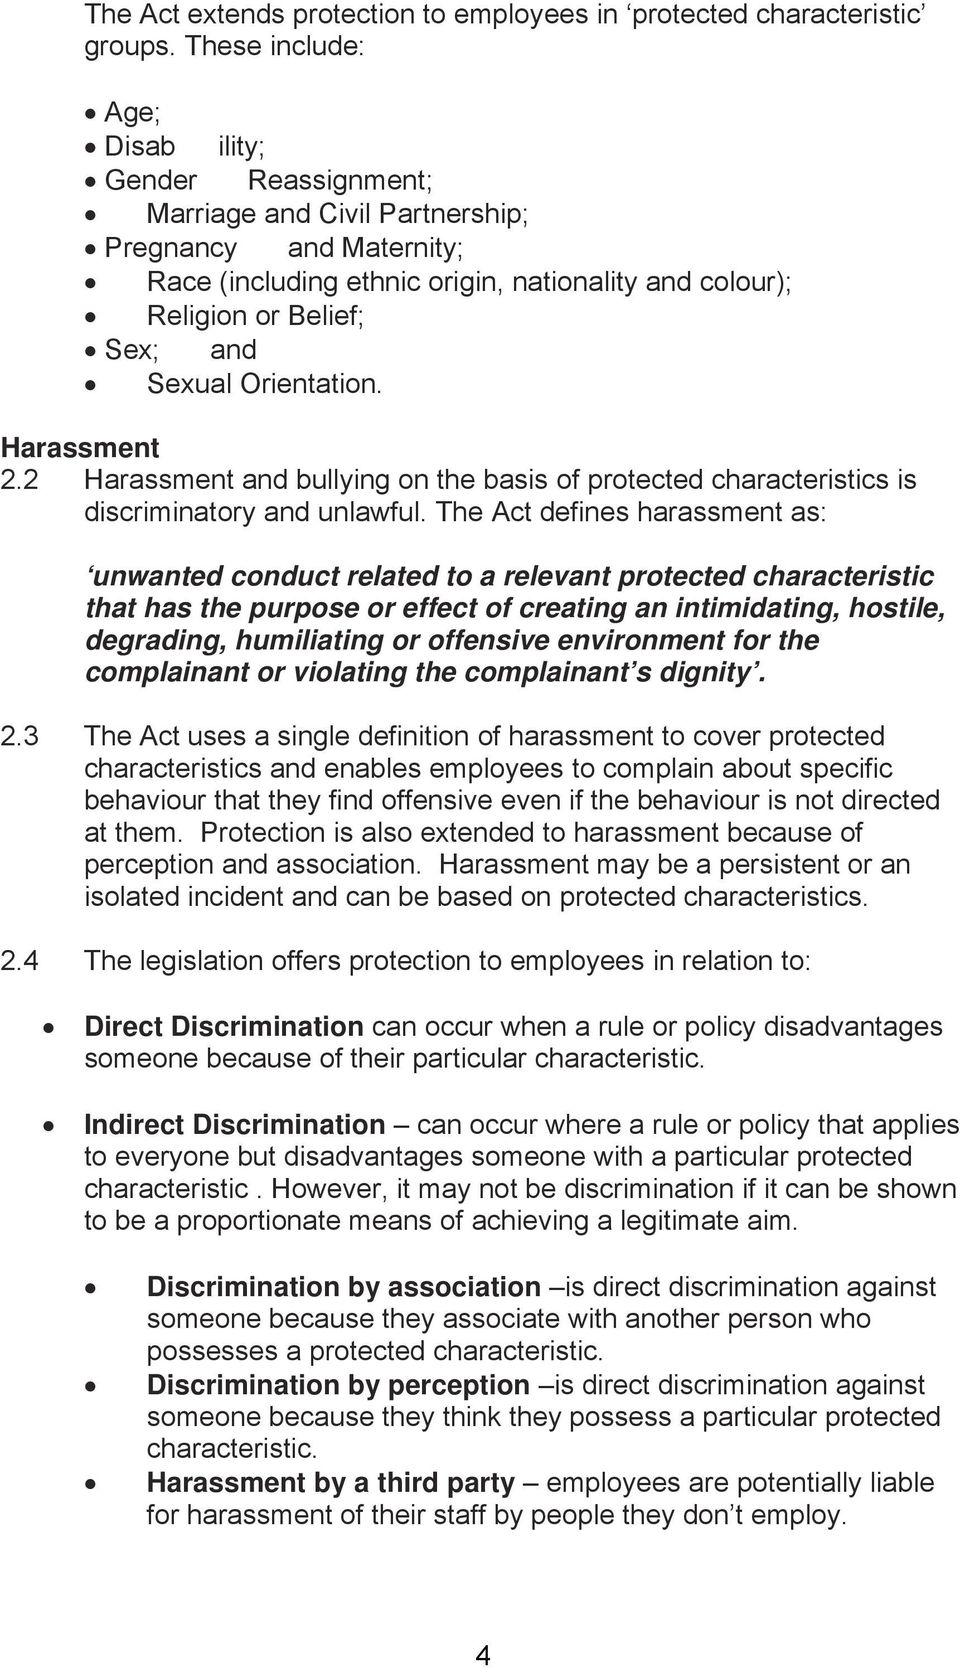 Sexual Orientation. Harassment 2.2 Harassment and bullying on the basis of protected characteristics is discriminatory and unlawful.